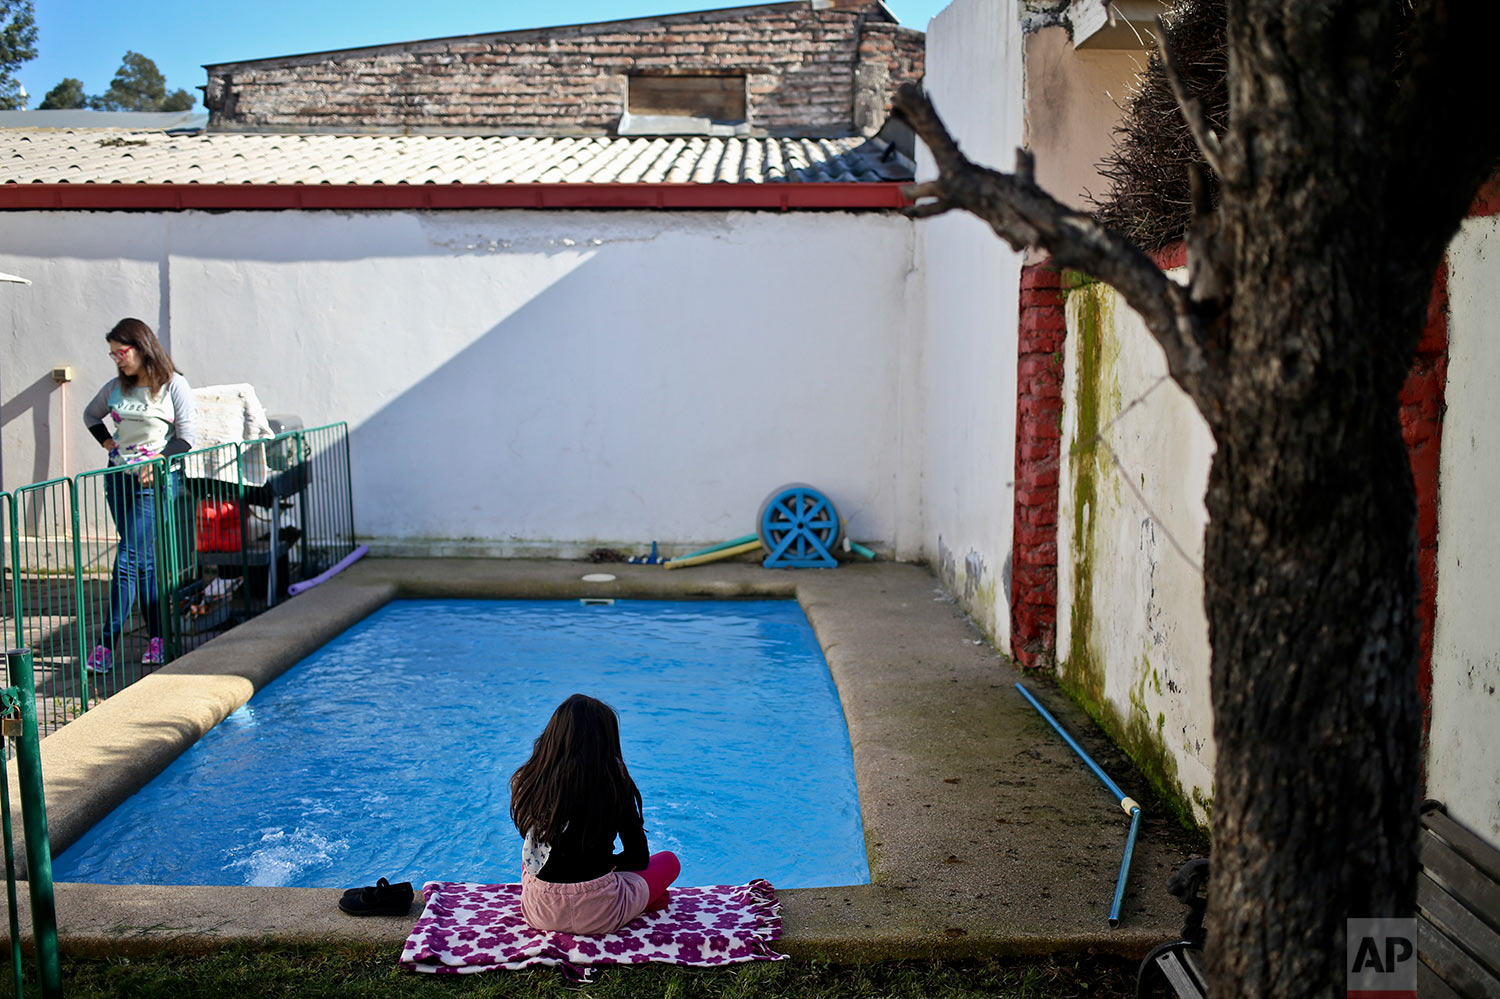 In this July 18, 2017 photo, transgender girl Luna sits beside the pool at her home in Santiago, Chile. An uncomfortable incident two years ago about Luna's gender led her parents to file a lawsuit demanding her name and gender be legally changed from boy to girl on her birth certificate. (AP Photo/Esteban Felix)